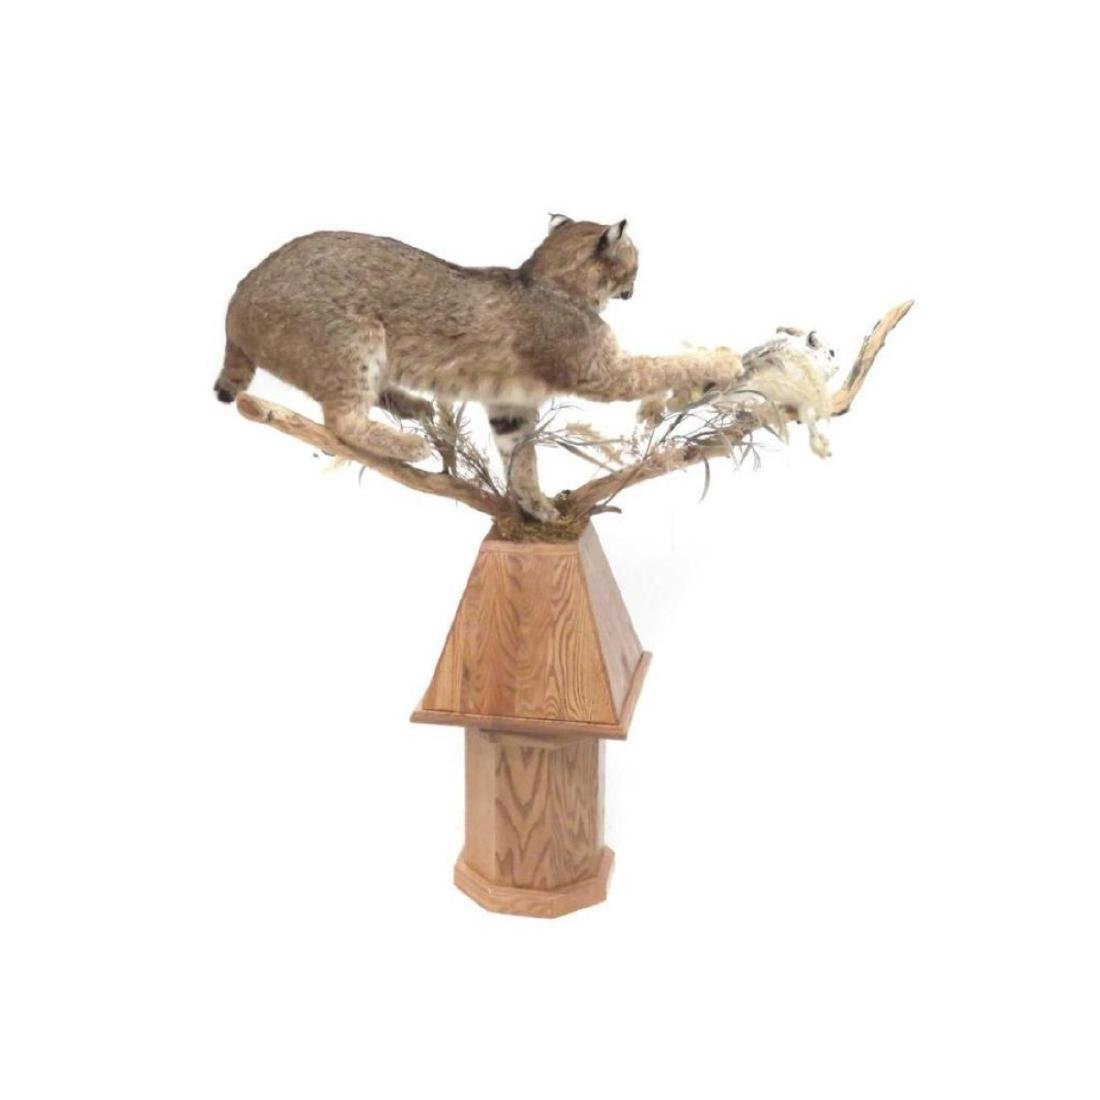 Maine Bobcat & Hare, Full Body Trophy Mount With Oak